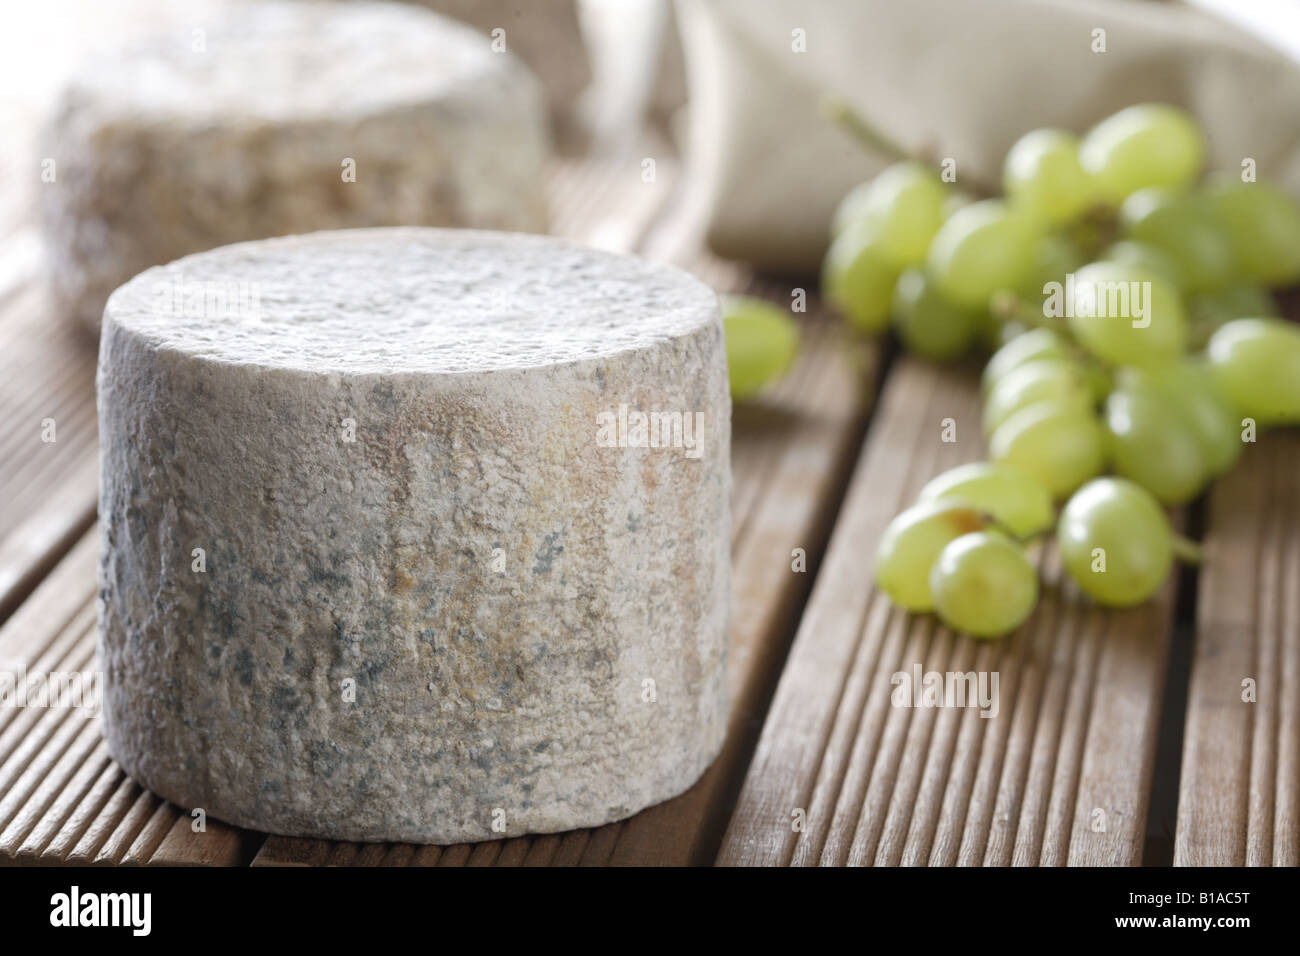 Goat cheese - Stock Image